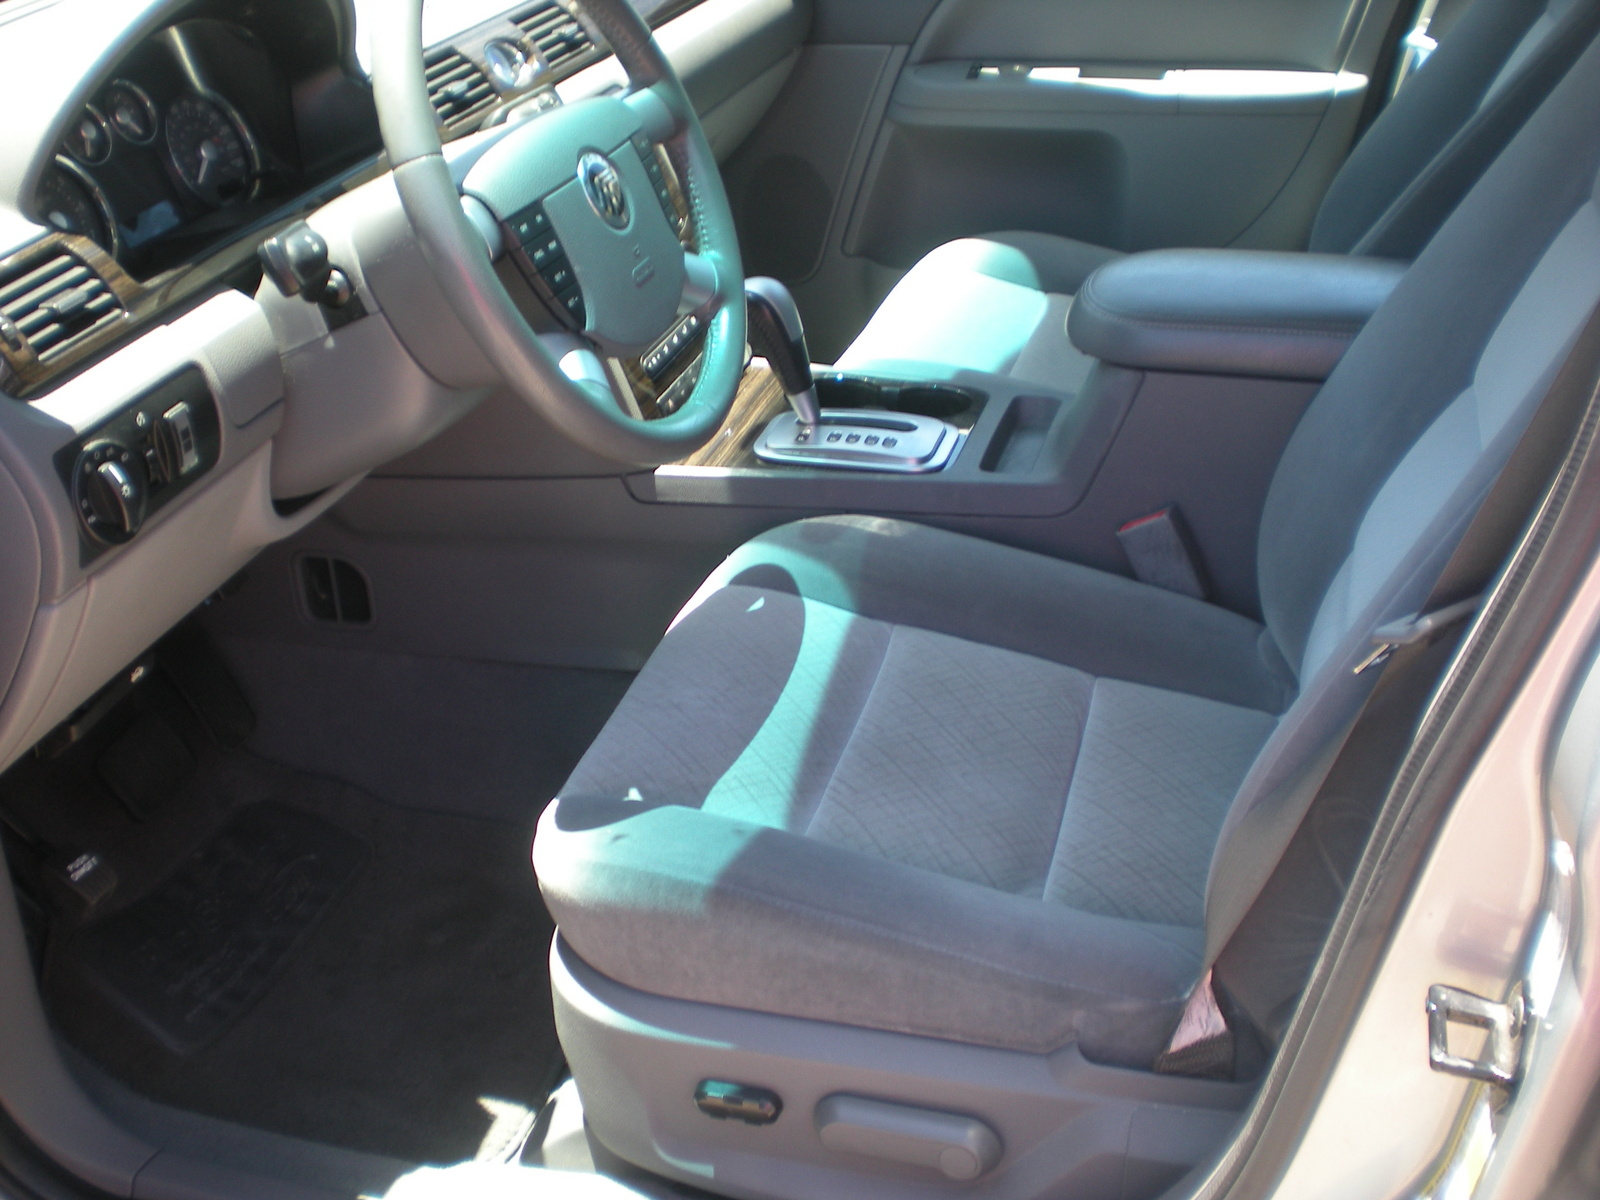 Mercury Montego Luxury Awd Pic on 2006 Mercury Montego Premier Interior